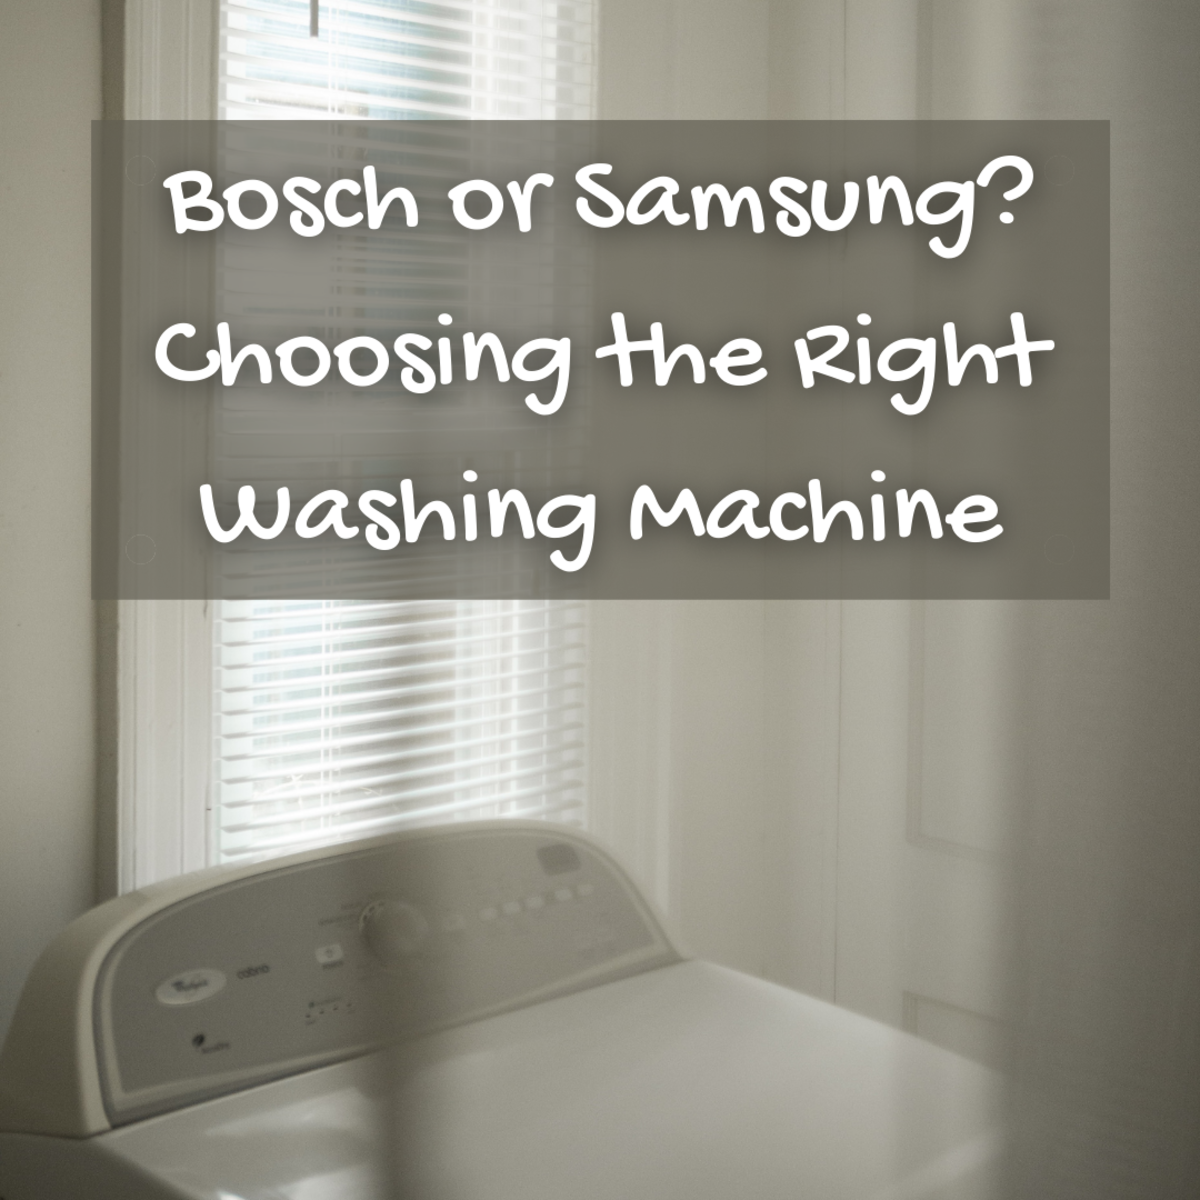 Learn about the qualities and features that make Samsung washing machines desirable.